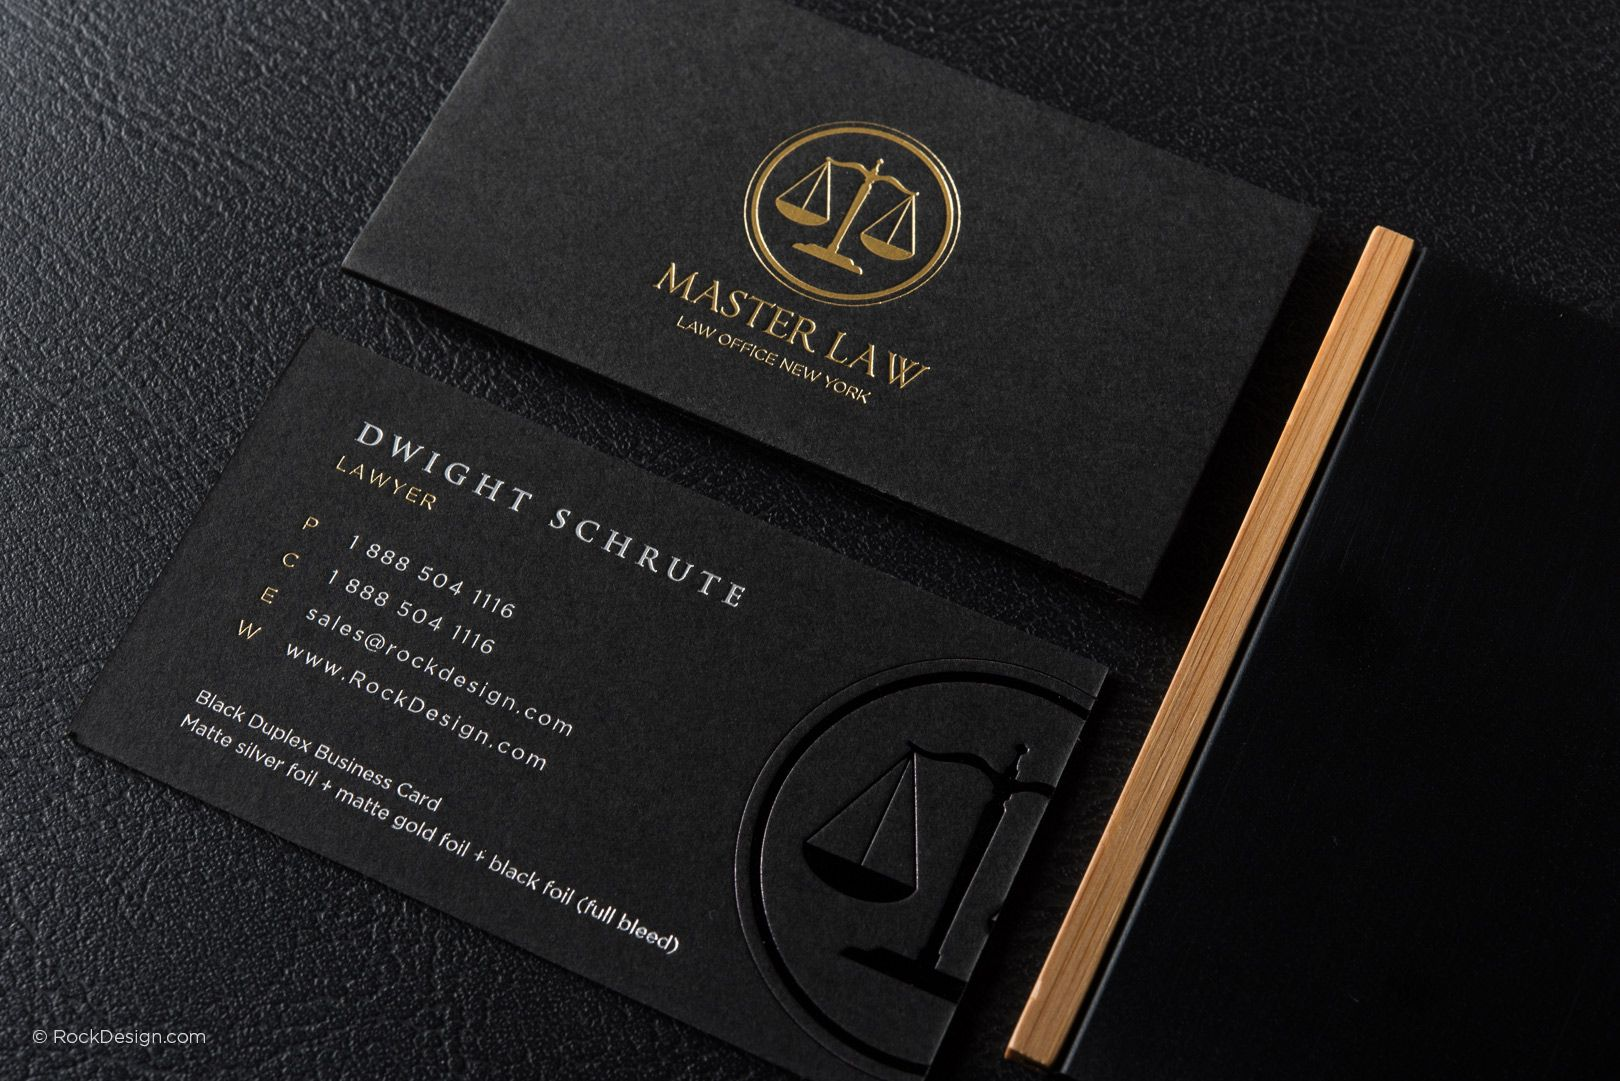 Classic modern black duplex attorney business card template use our free luxury templates to create your visit cards today buy gold and black business cards online today to expand your law business magicingreecefo Gallery